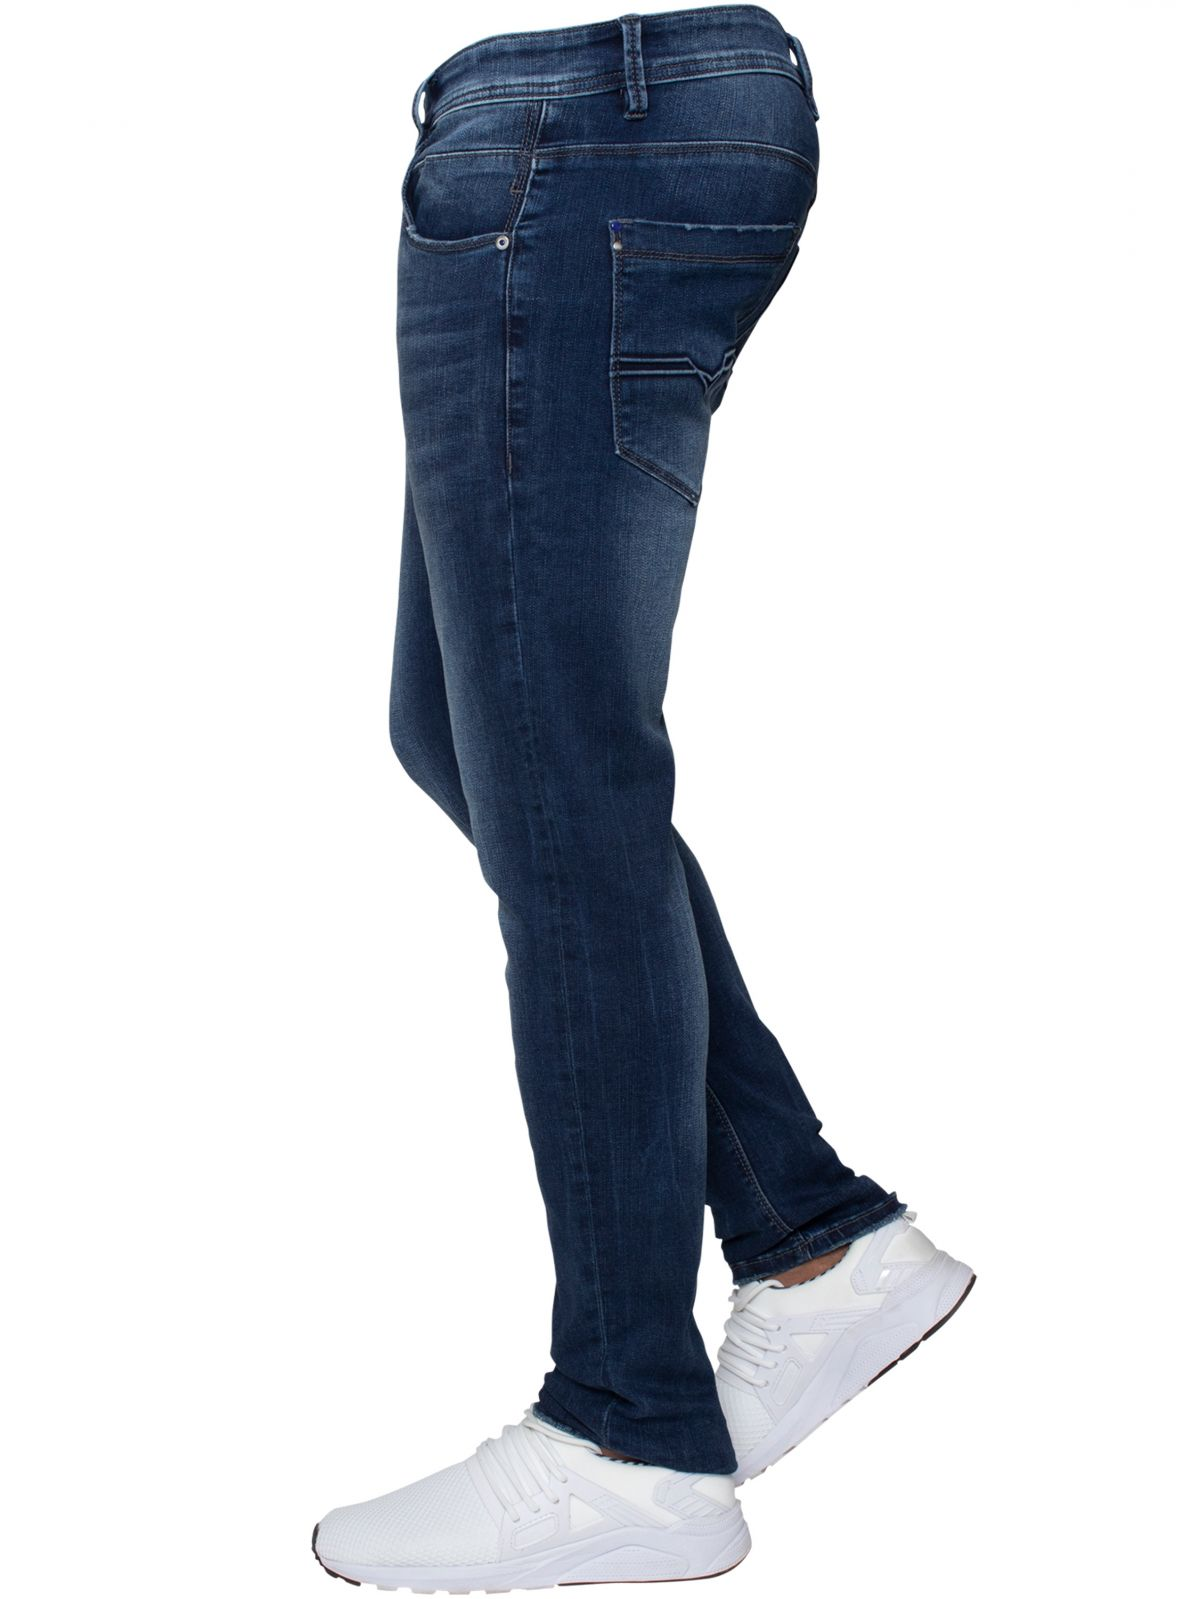 ETO | Mens Designer Basic Hyperstretch Blue Jeans